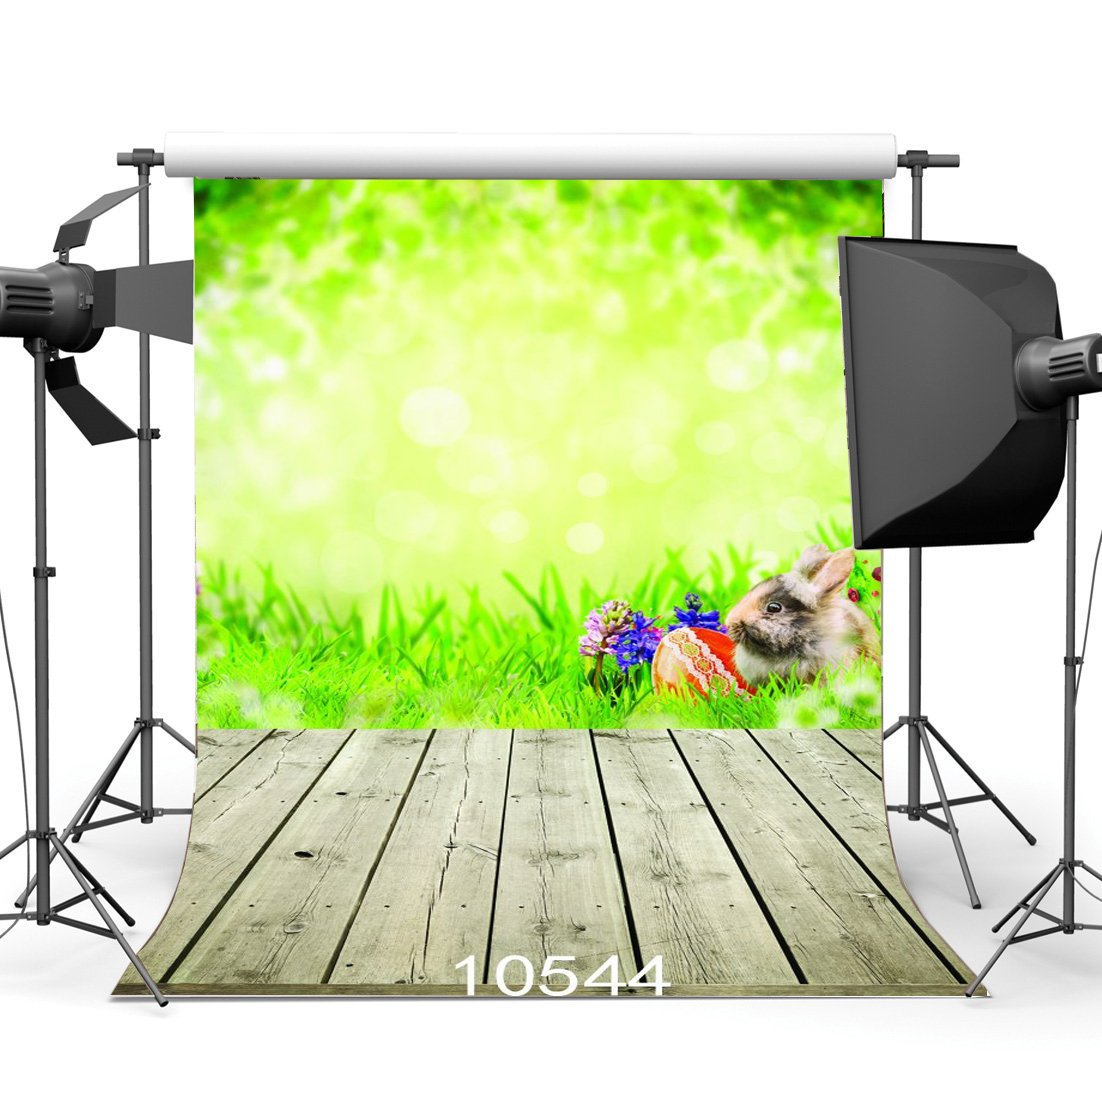 Photography Backdrops Bokeh Blurry Green Rabbit Easter Eggs Green Grass Nostalgis Stripe Wooden Floor Background-in Photo Studio Accessories from Consumer Electronics